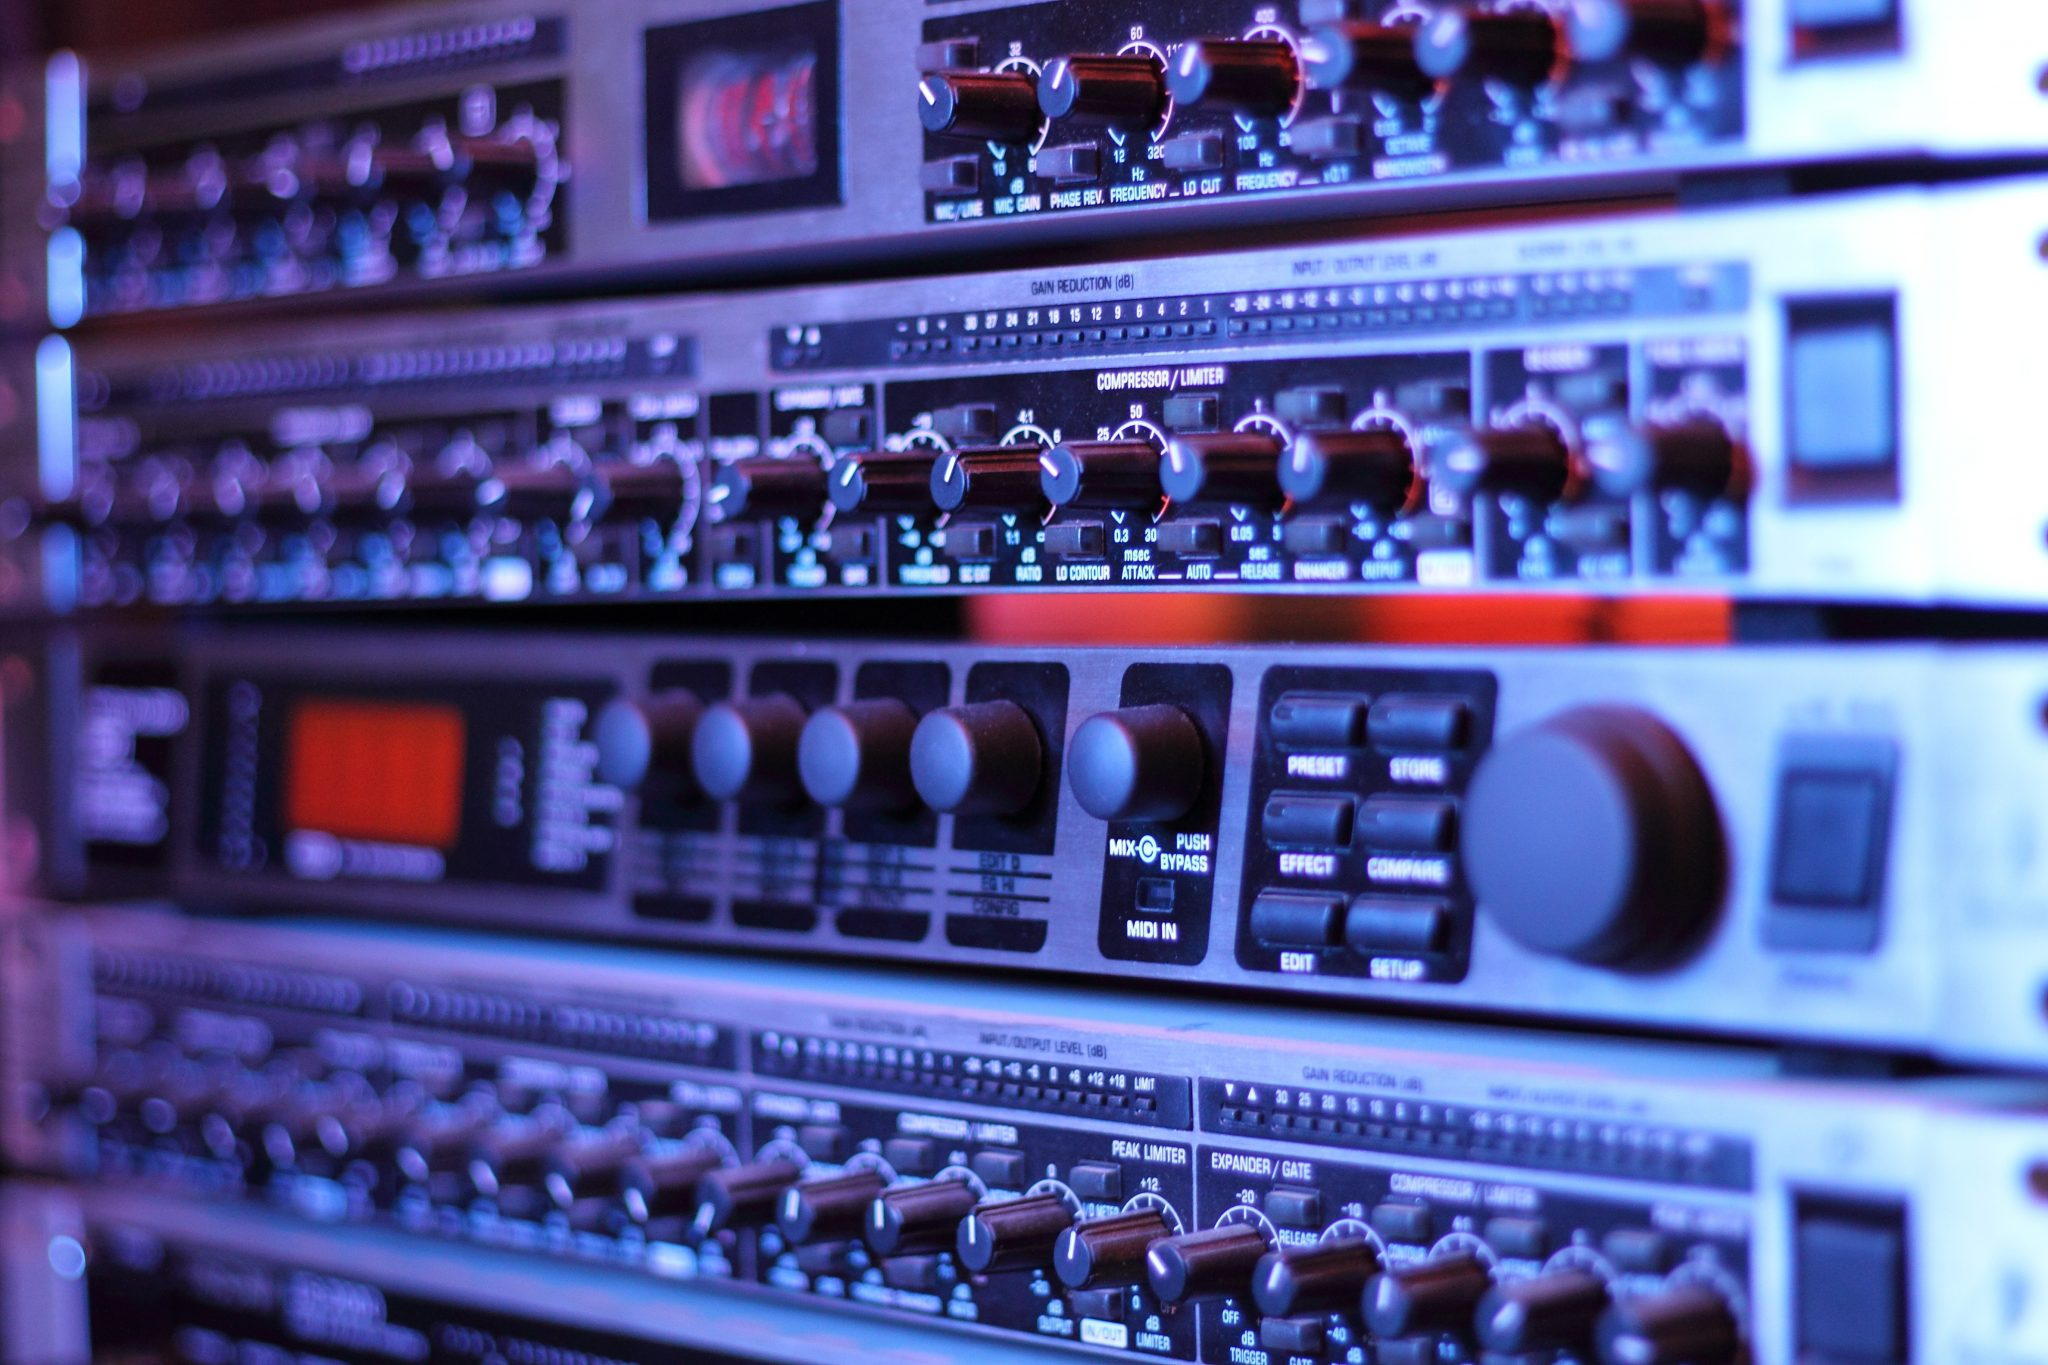 Benefits of Hardware Synthesizers